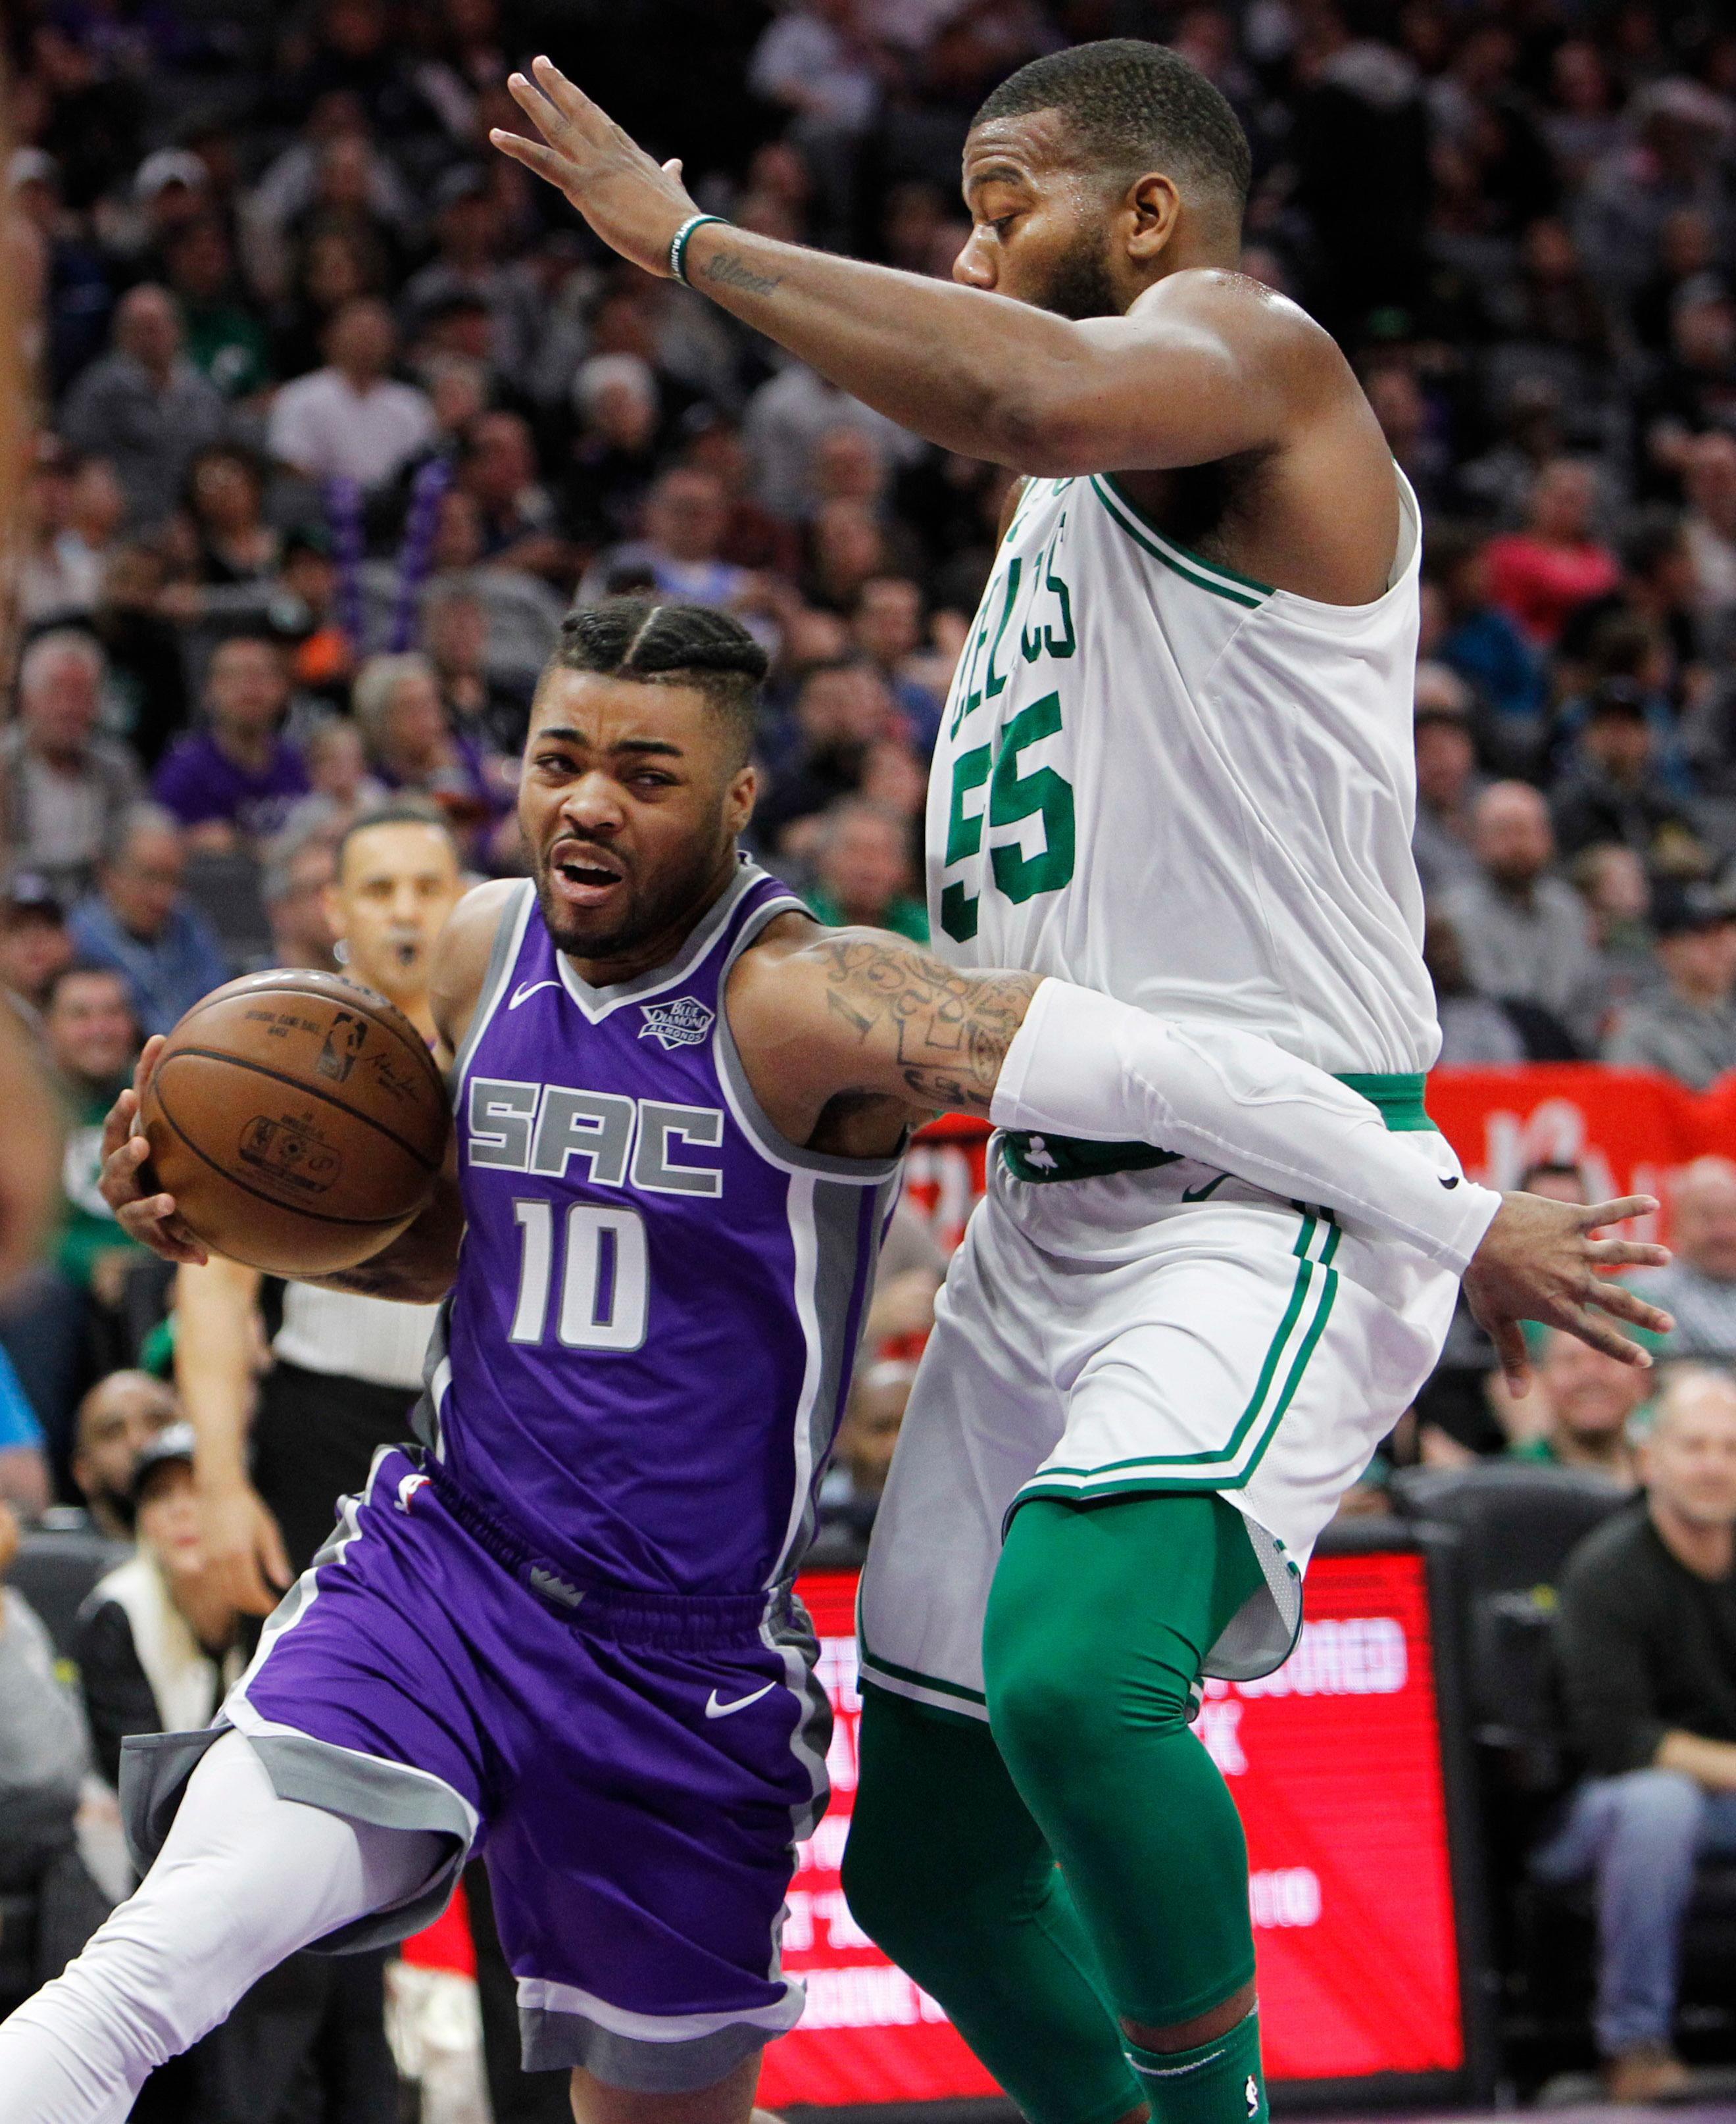 Sacramento Kings guard Frank Mason III (10) drives around Boston Celtics center Greg Monroe (55) during the first half of an NBA basketball game in Sacramento, Calif., Sunday, March 25, 2018. (AP Photo/Steve Yeater)